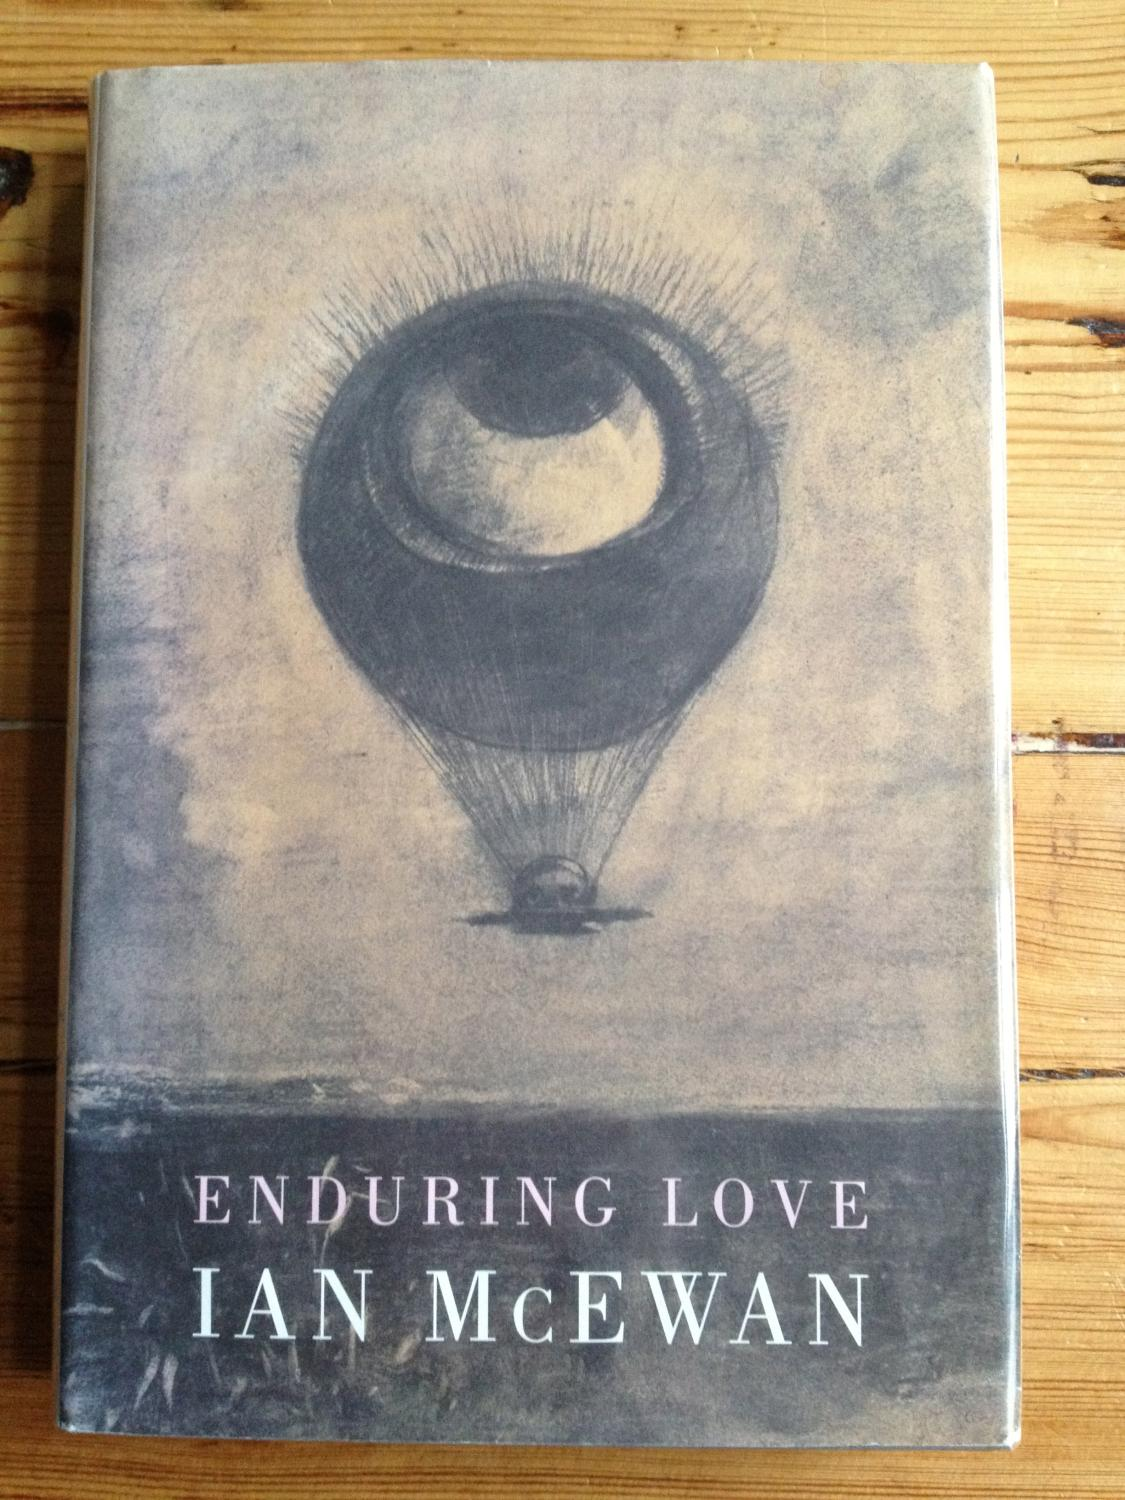 enduring love whose reality essay And suggestions on enduring love, and david morgan for his essay on – enduring love with a video interview with ian mcewan representing reality.